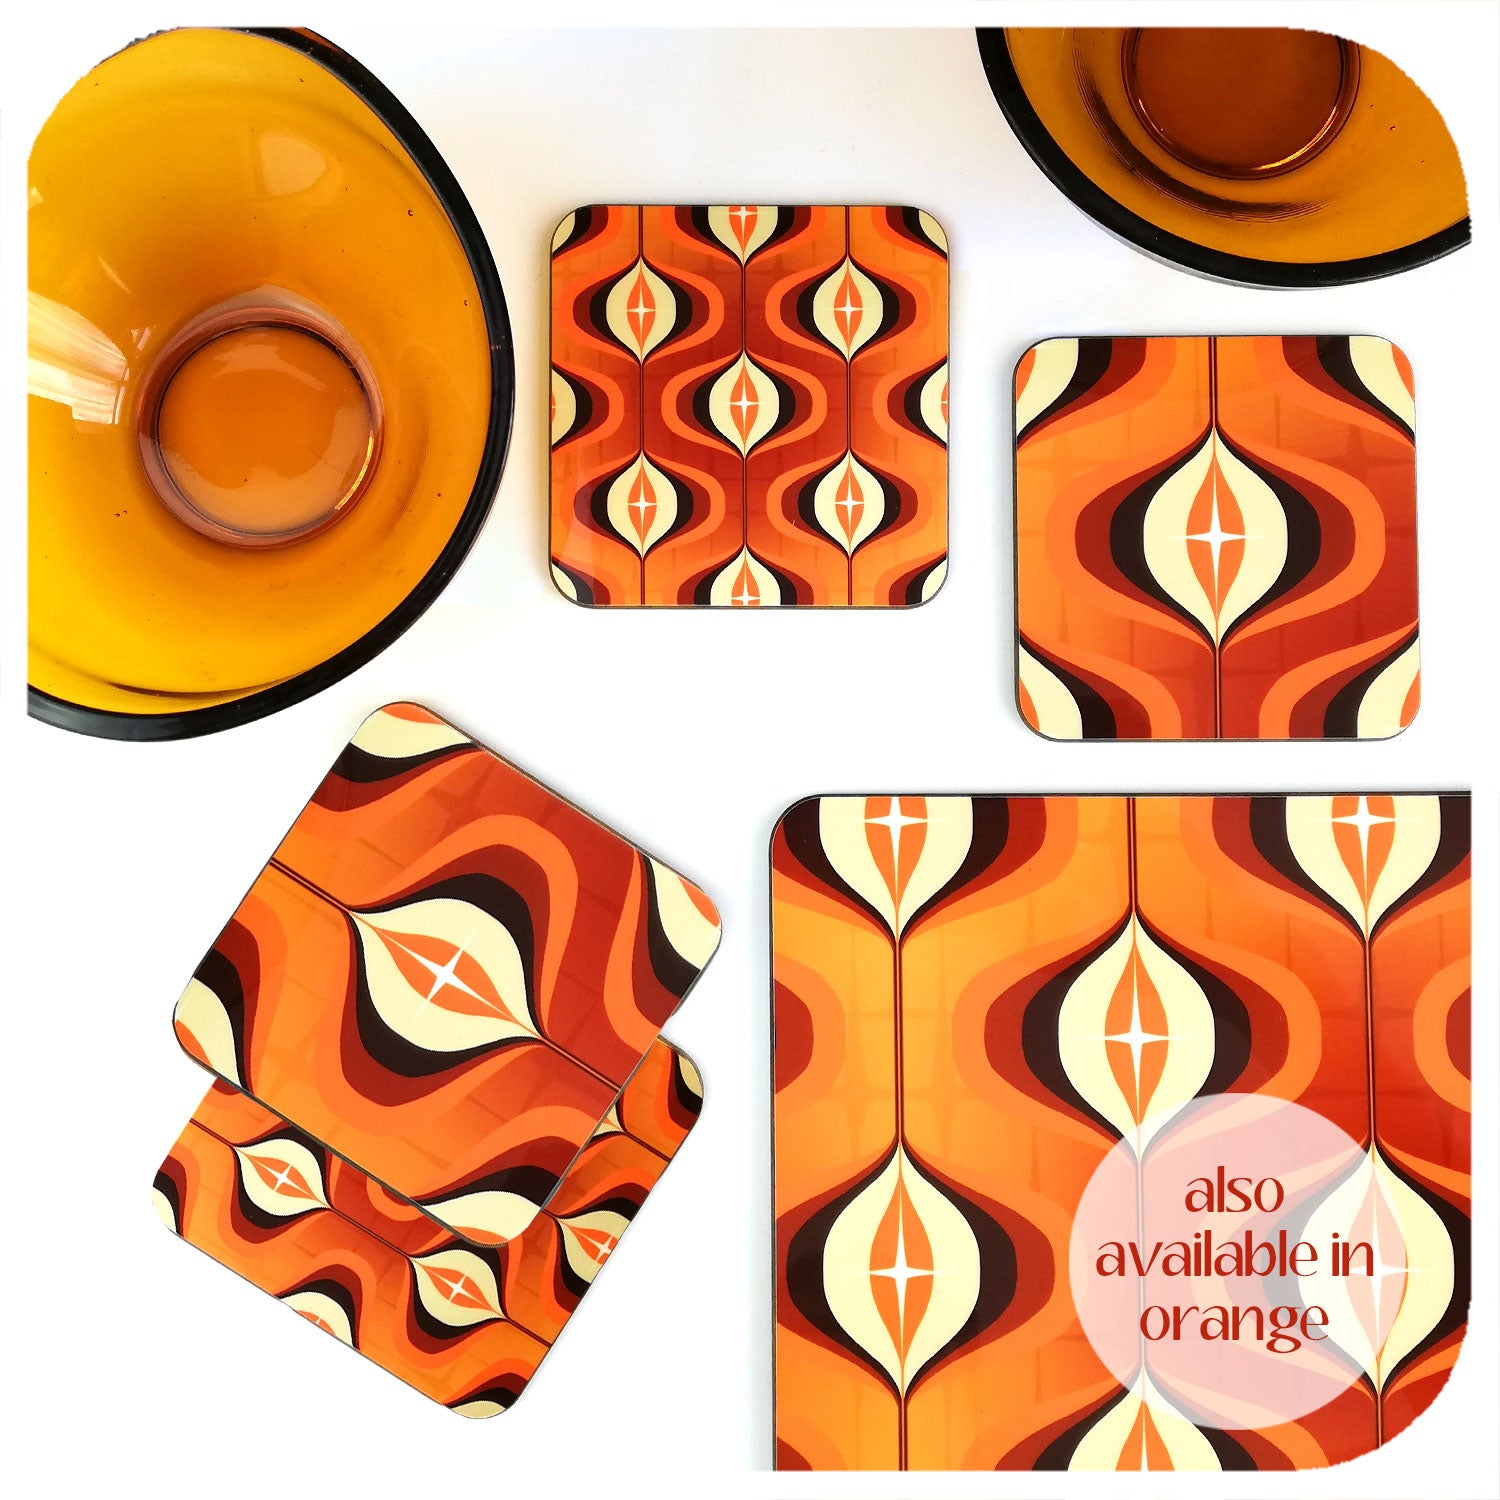 70s Op Art Tableware also available in Orange | The Inkabilly Emporium